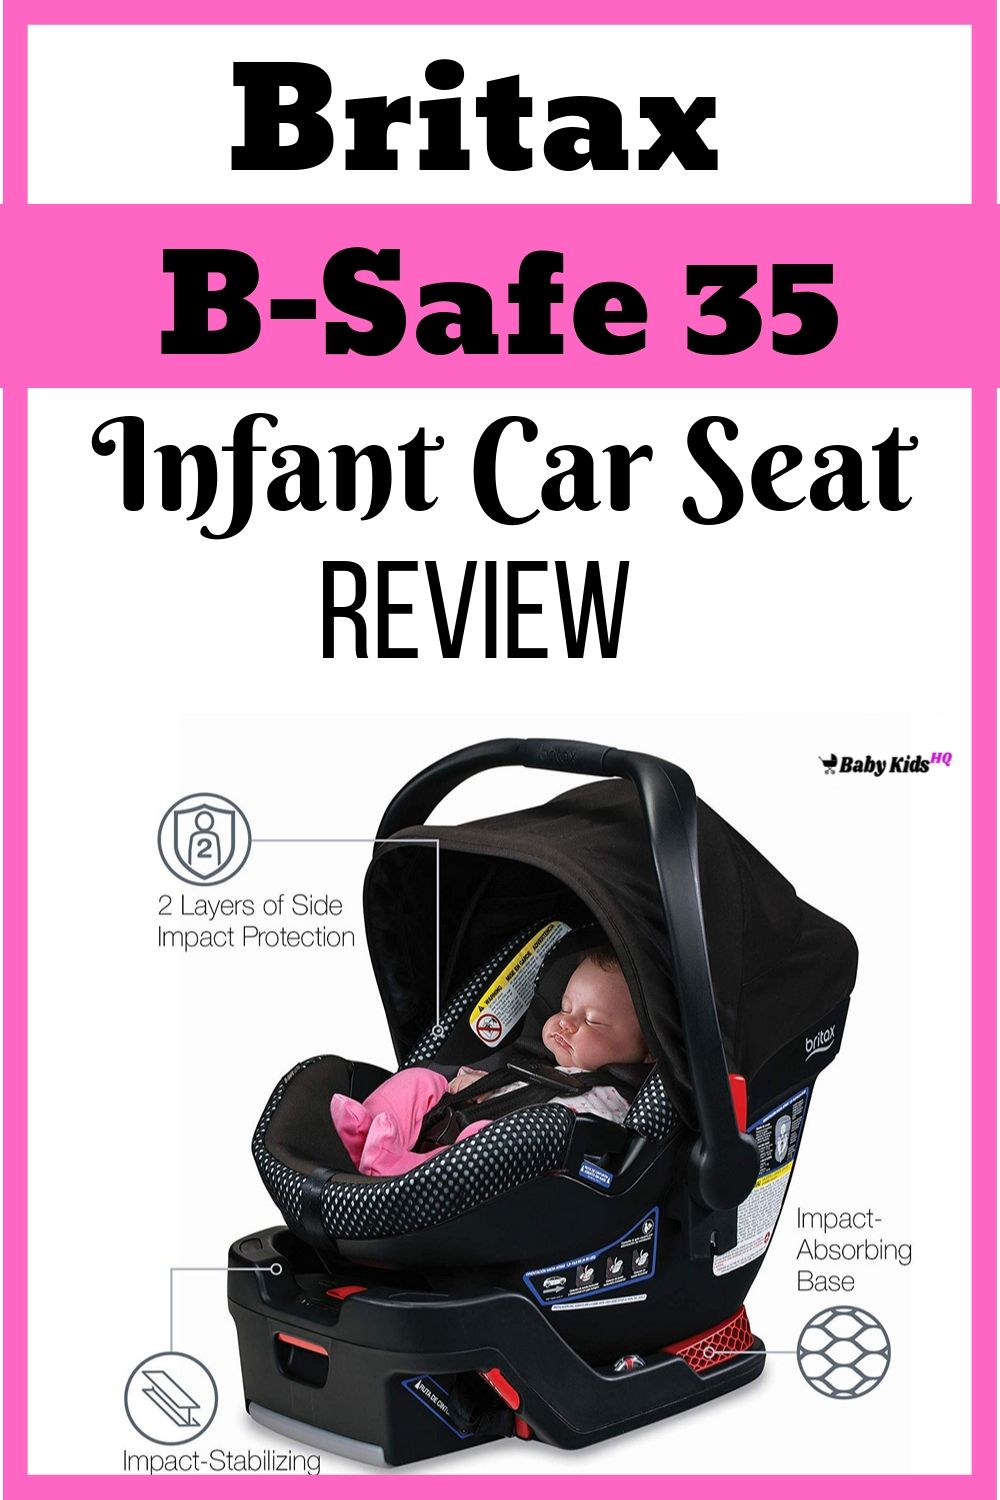 If you are looking for the safety provided by a Britax infant car seat but don't have room for the large and bulky Britax Chaperone seat, then check out the new Britax B-Safe 35 infant car seat.